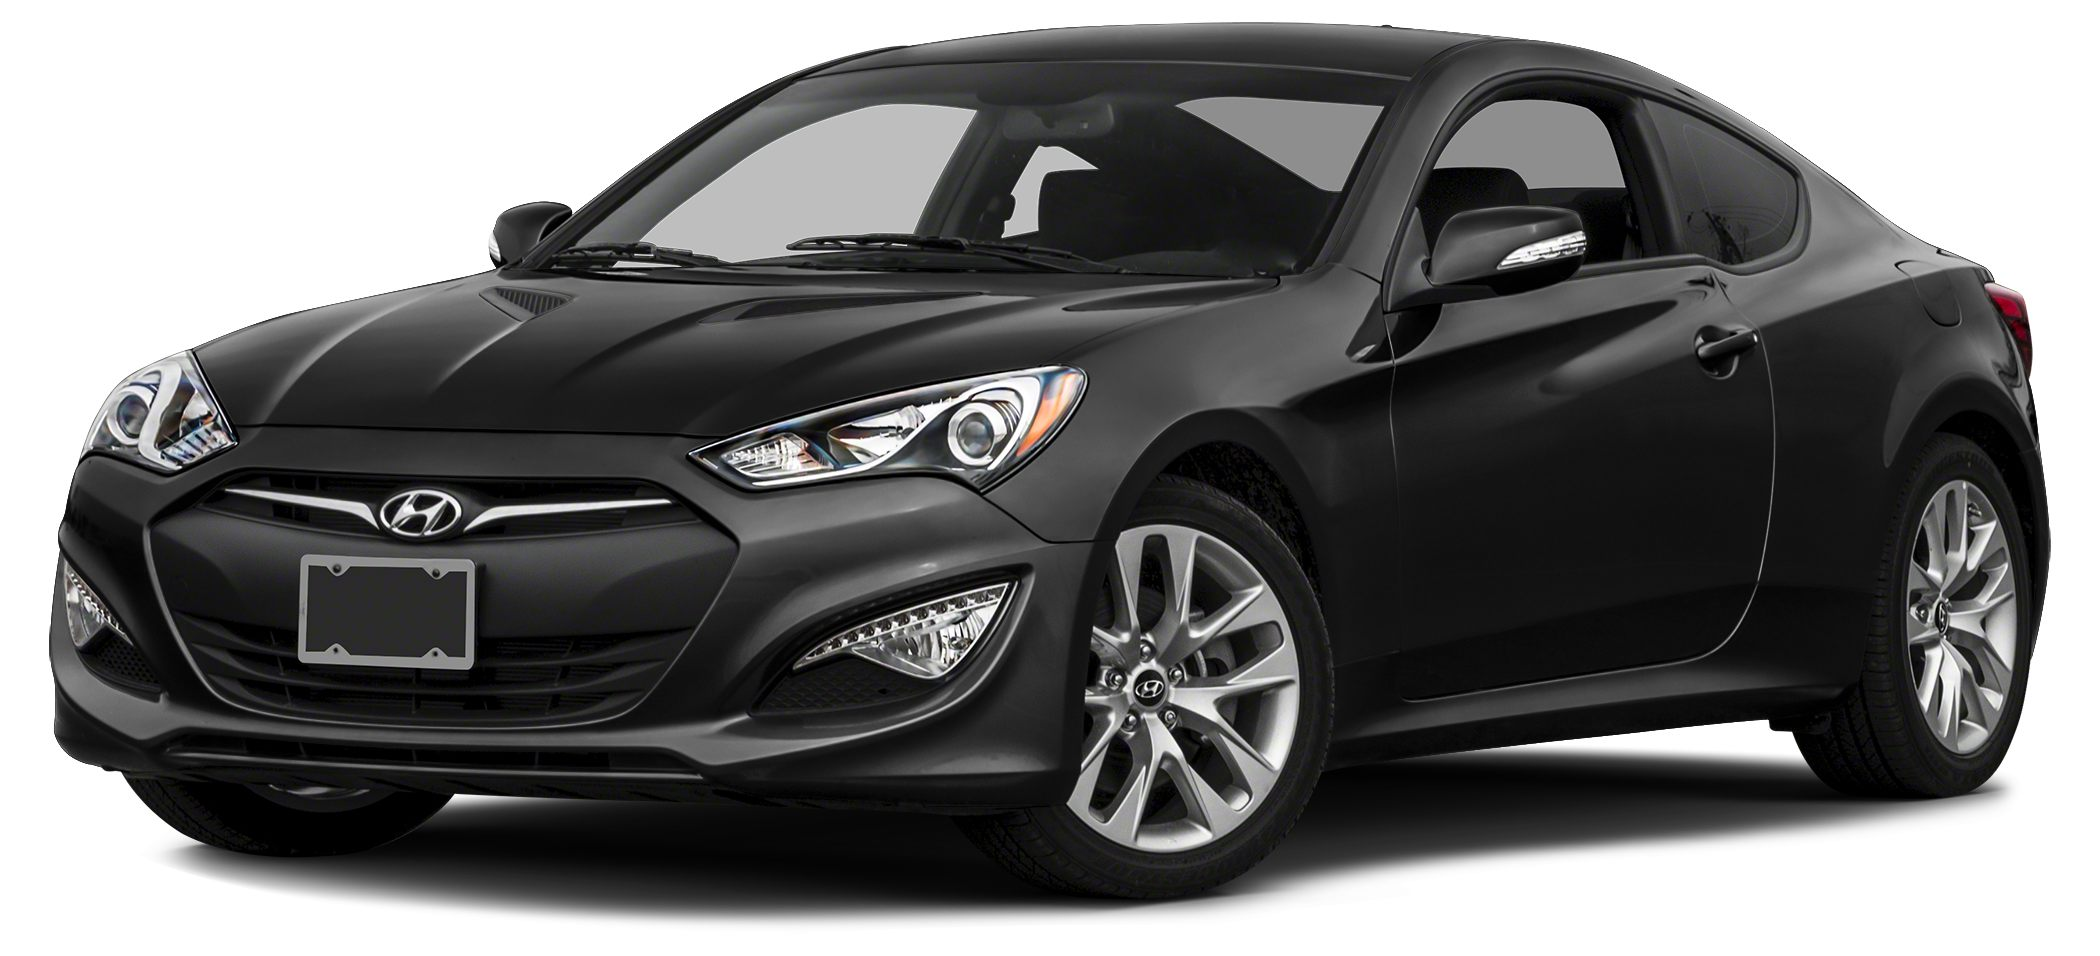 2015 Hyundai Genesis Coupe 38 R-Spec Join us at Flood Ford of East Greenwich Real Winner Why Bu